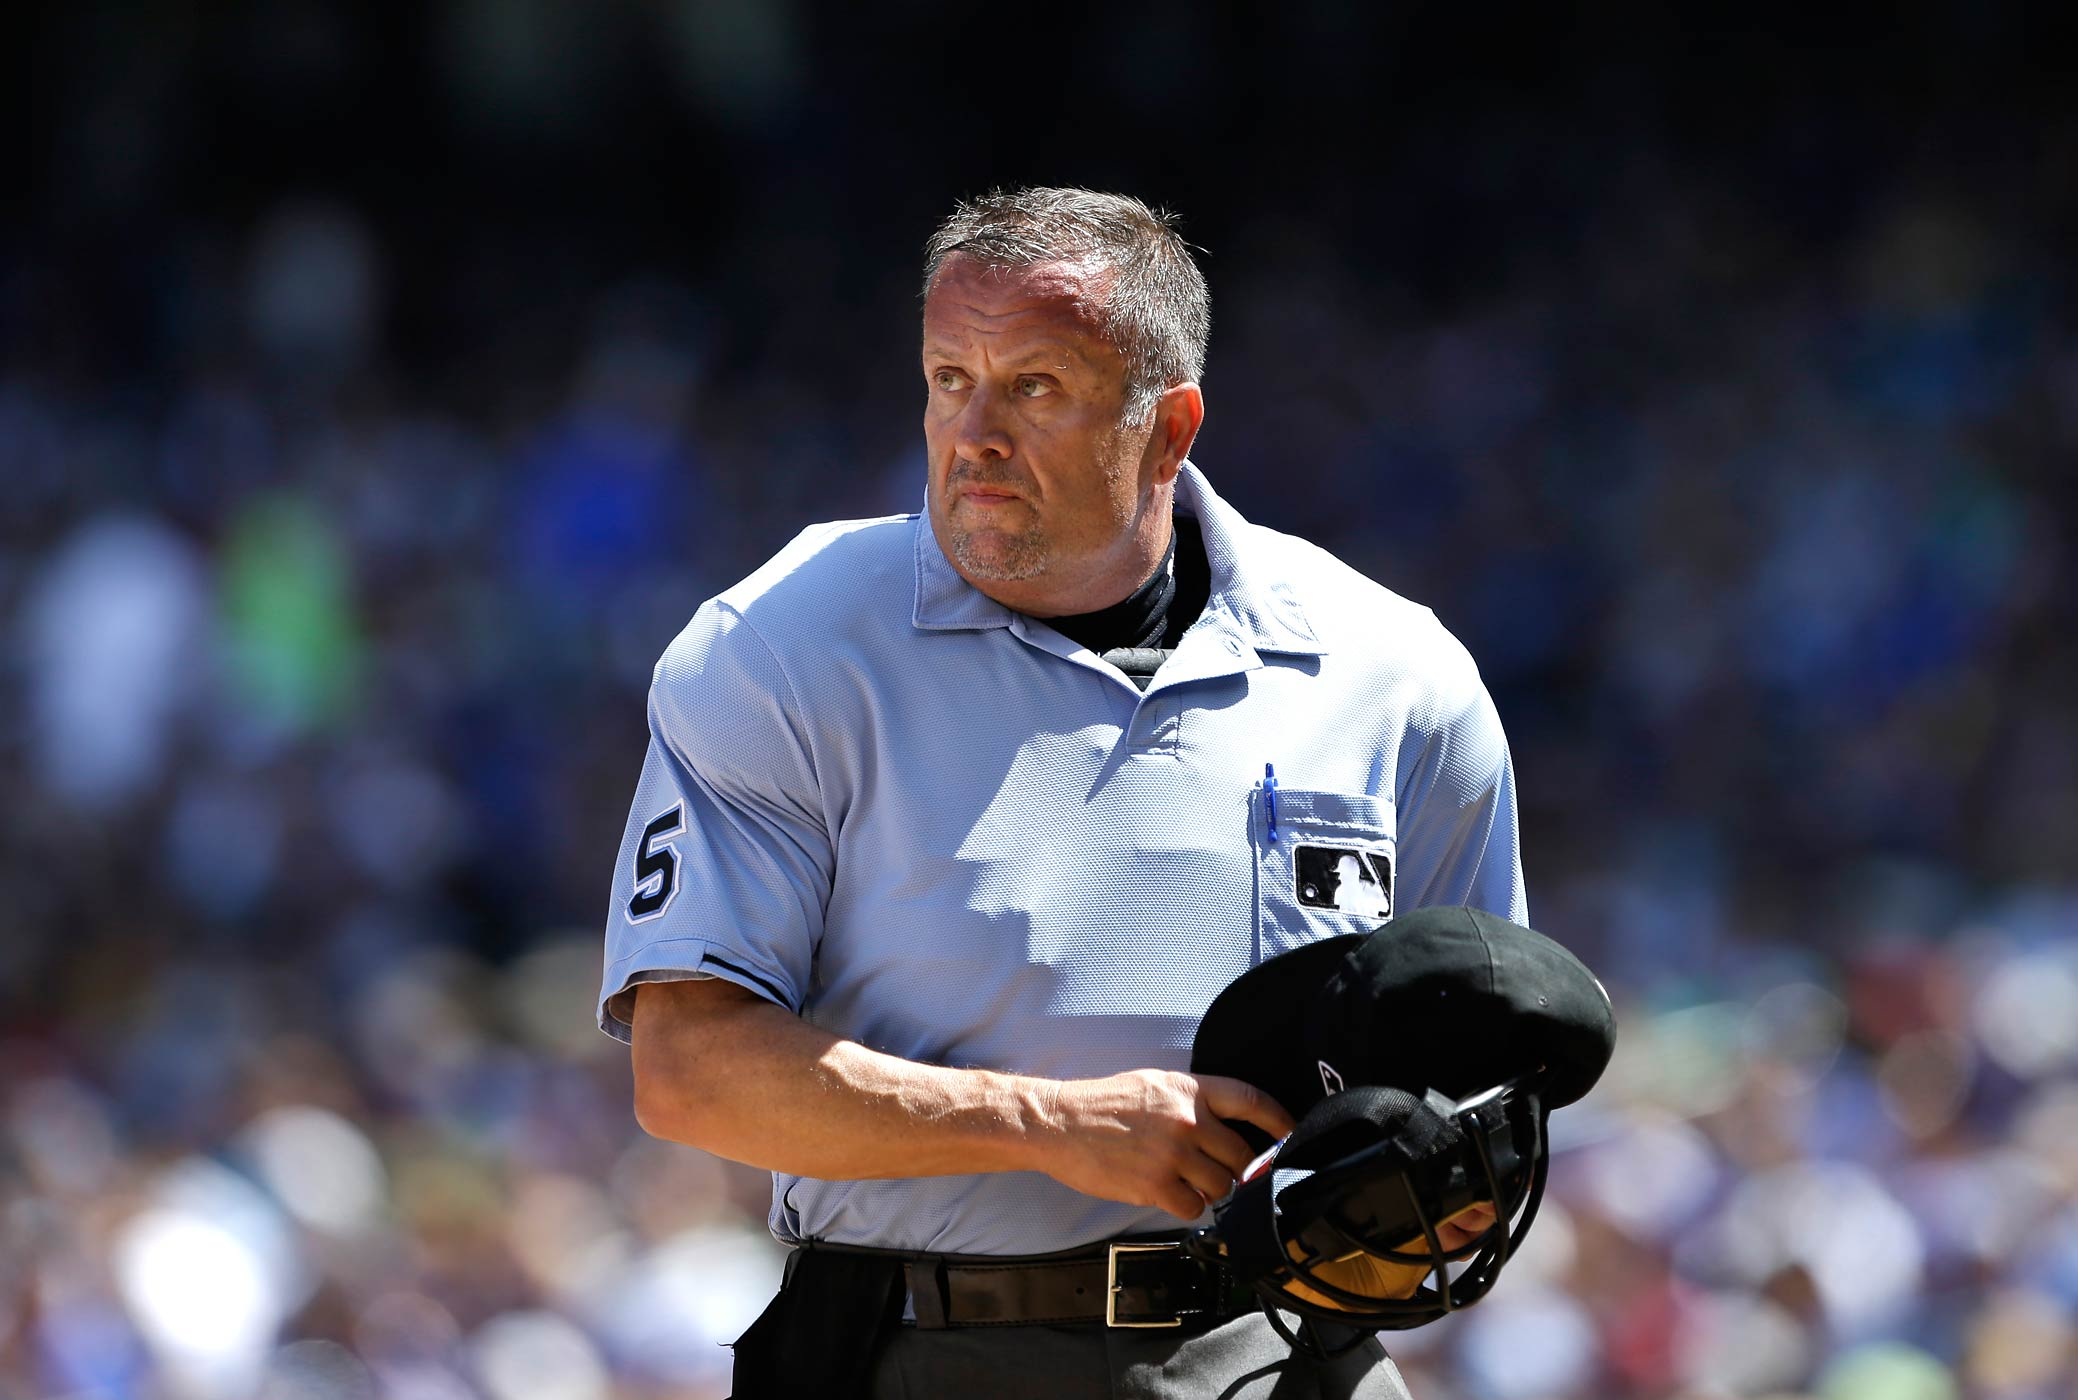 Umpire Dale Scott officiates a game between the Mariners and Toronto Blue Jays on Aug. 7, 2013, in Seattle, Wa.